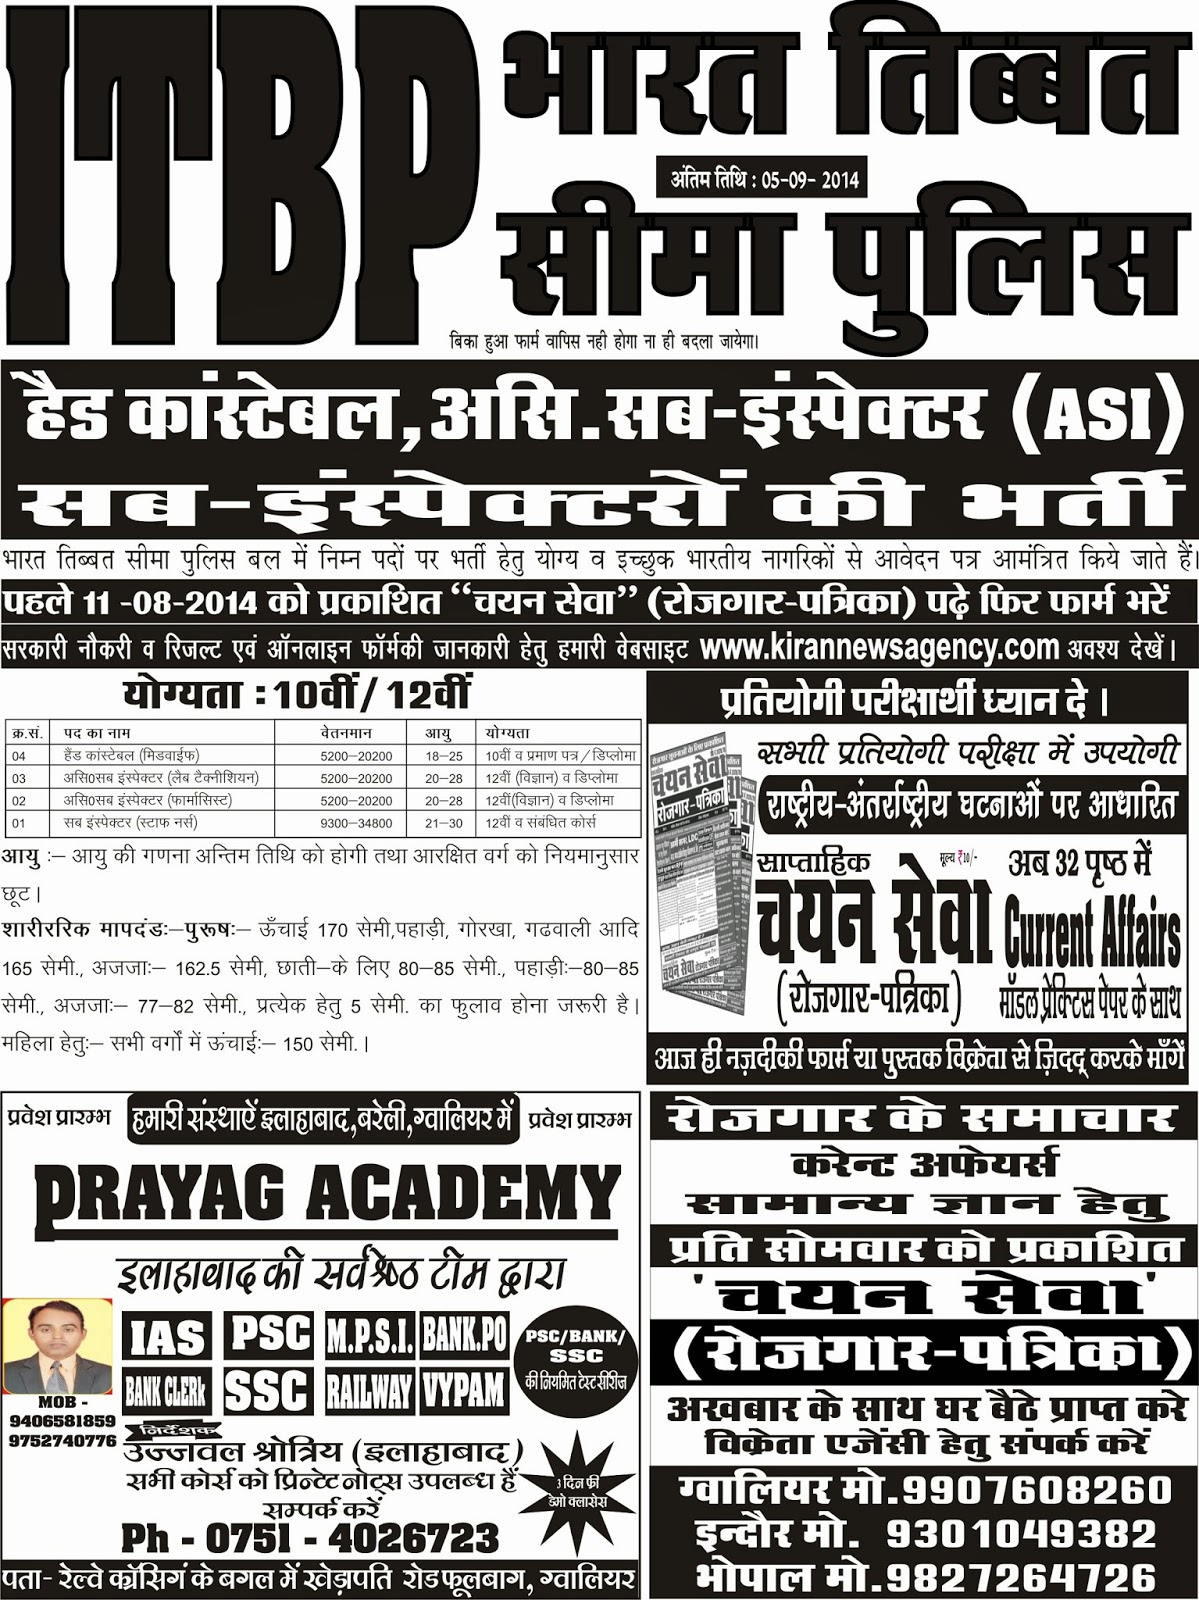 Data Entry Jobs From Home In Bhopal - Latest Home Based Data Entry jobs in Bhopal - JobisJob